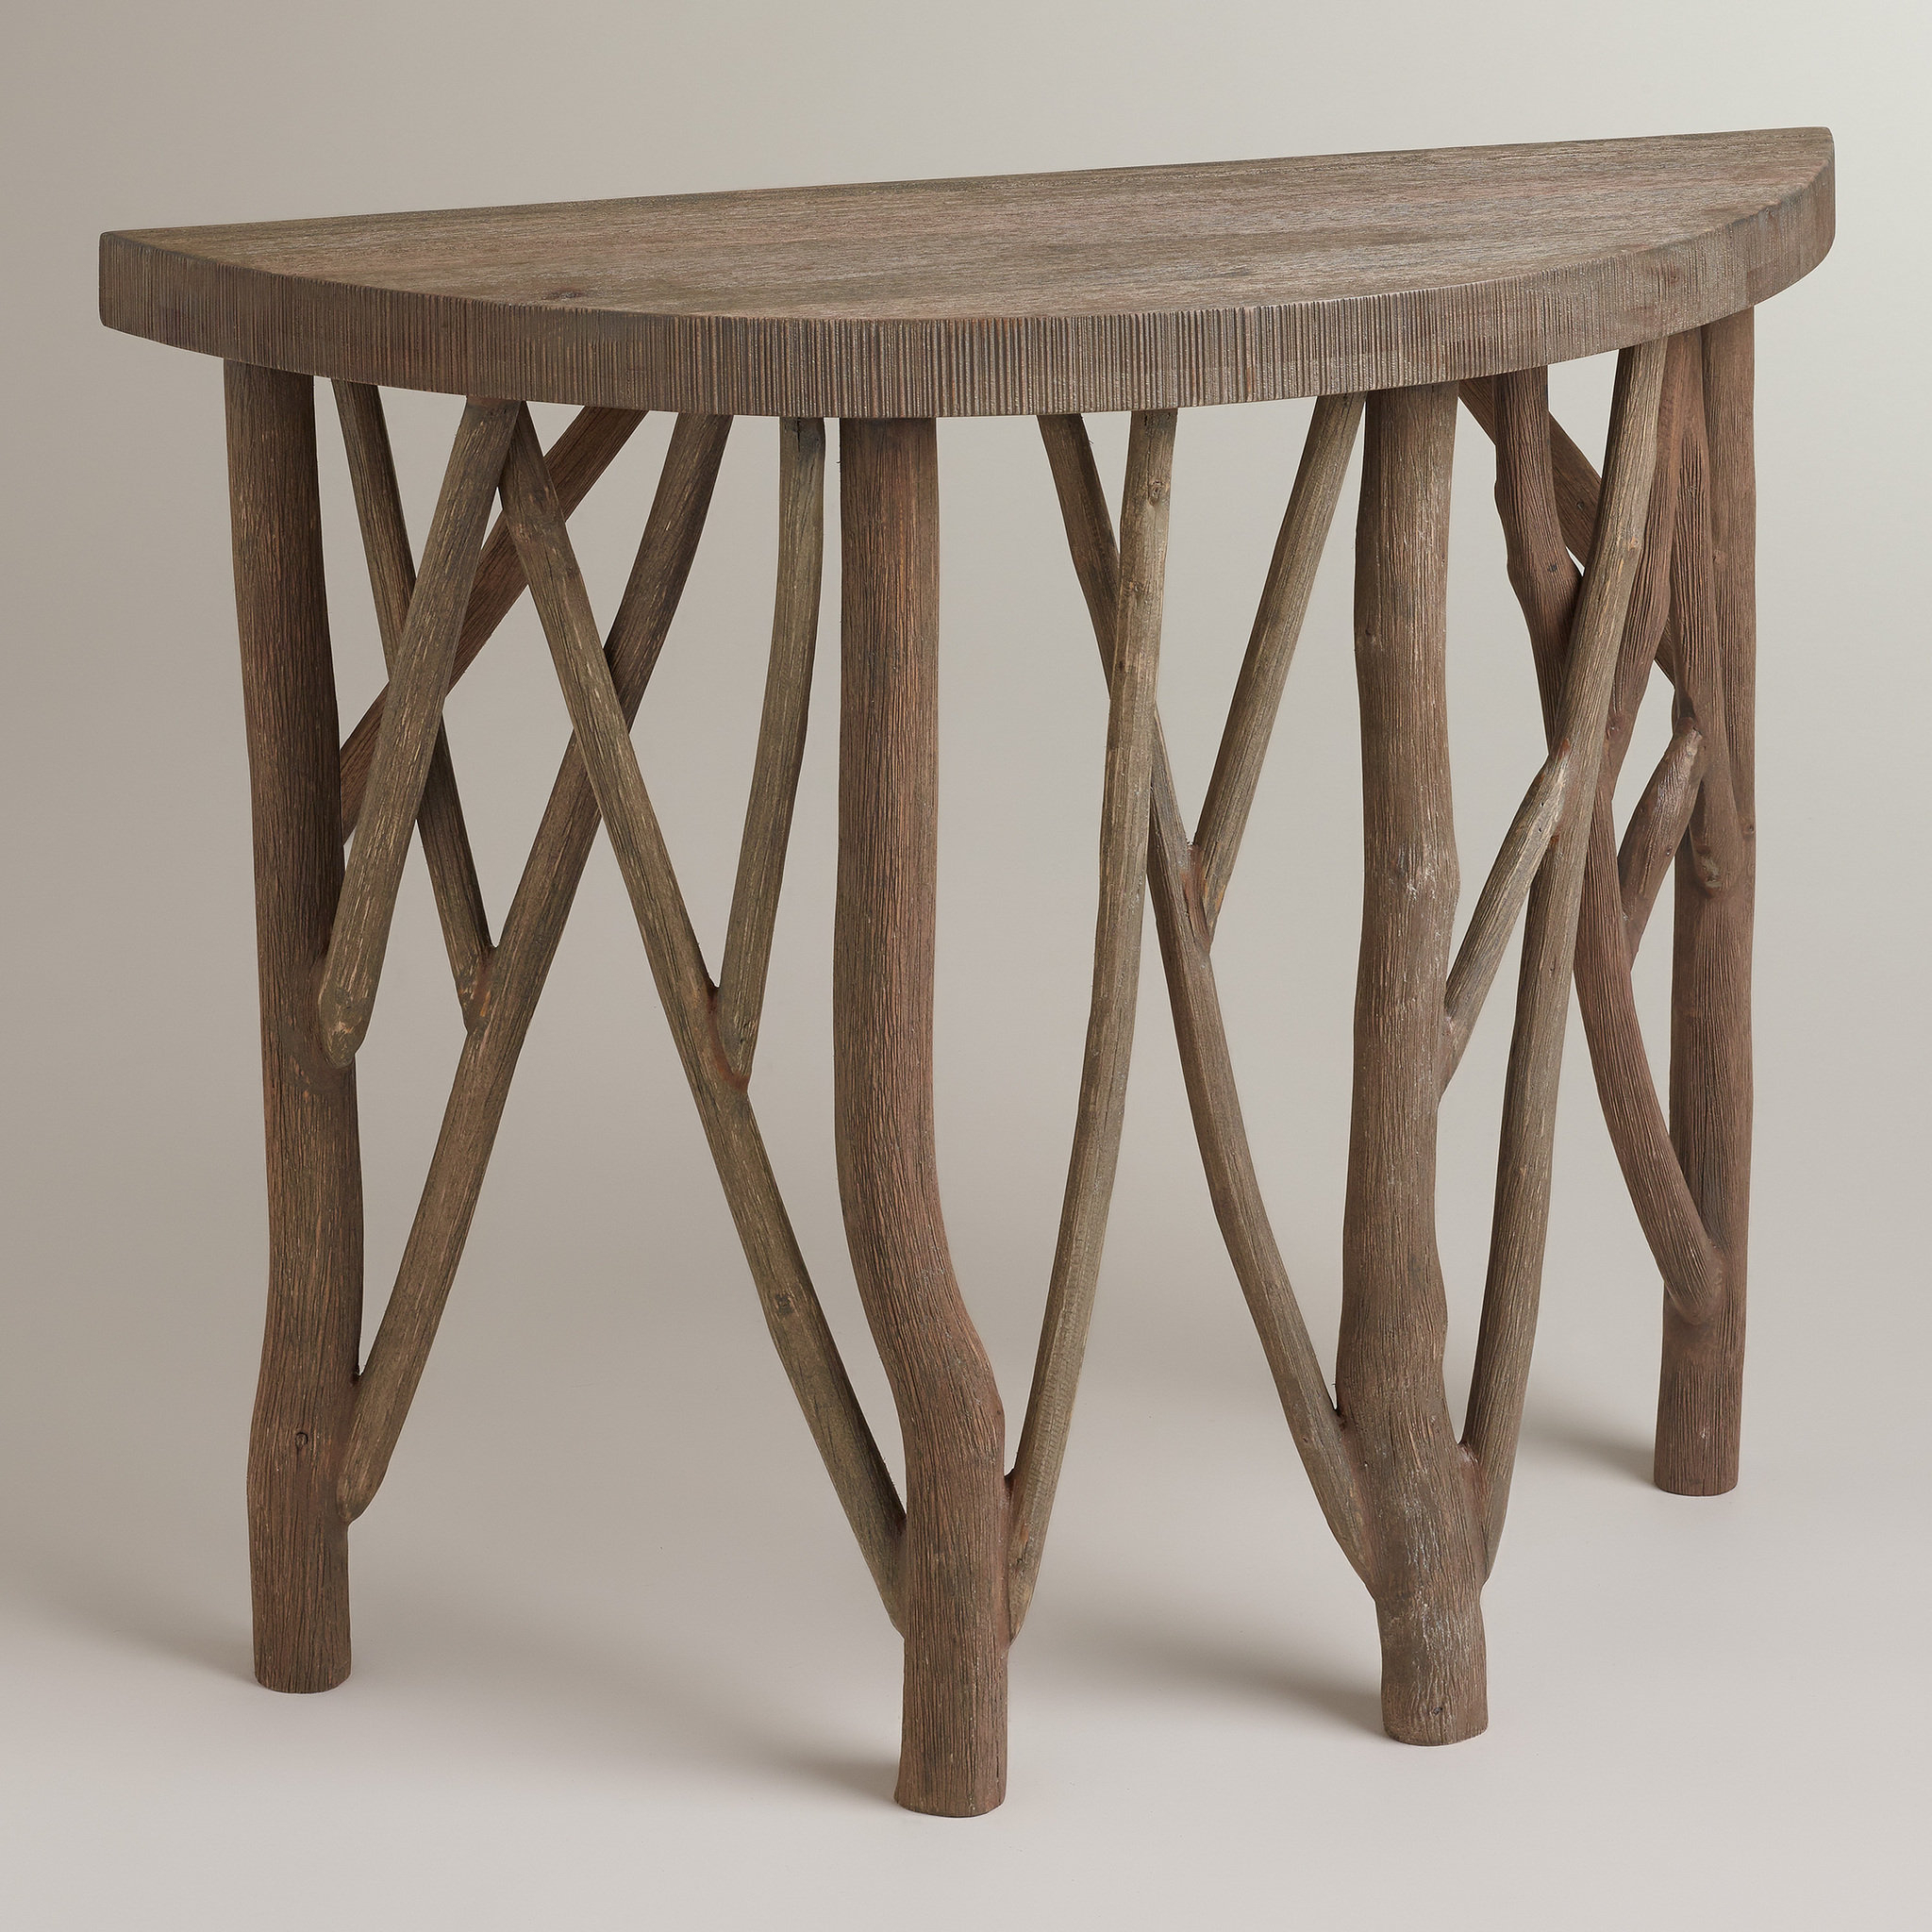 Three Demilune Tables, Three Prices | Oregonlive with regard to Clairemont Demilune Console Tables (Image 27 of 30)